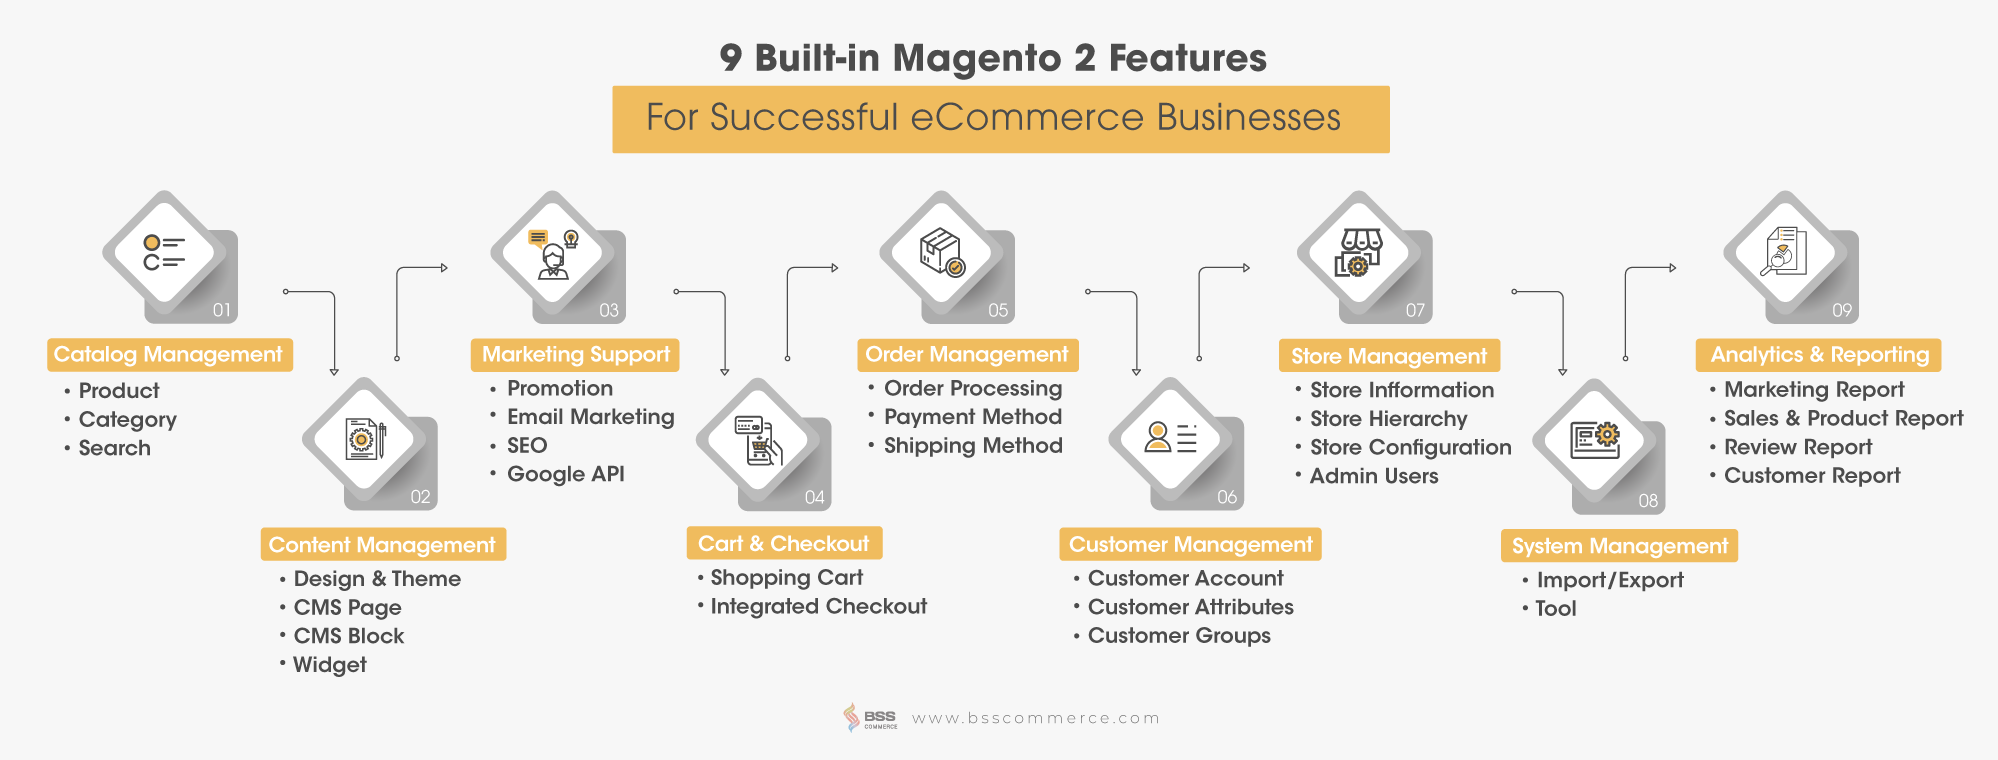 Magento Full Tutorial from Beginner to Advanced - BSS Commerce